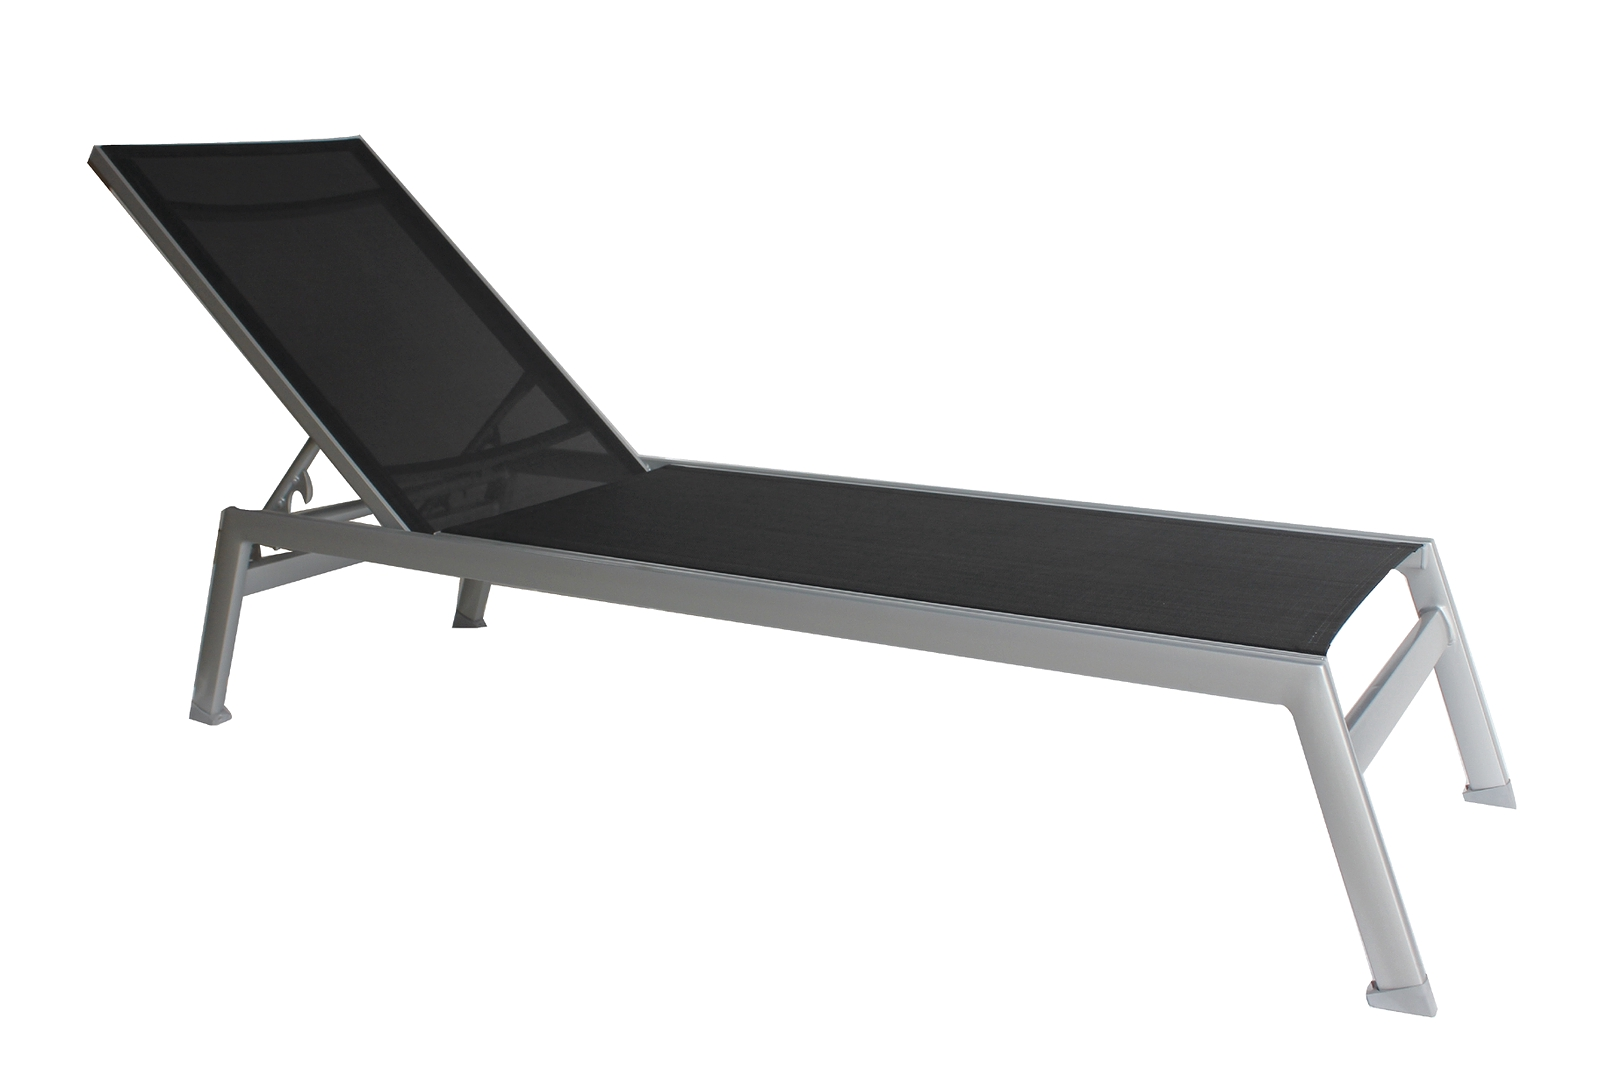 Ratana In Montreal Quebec  LUCCA Lounge Chair - Ratana outdoor furniture